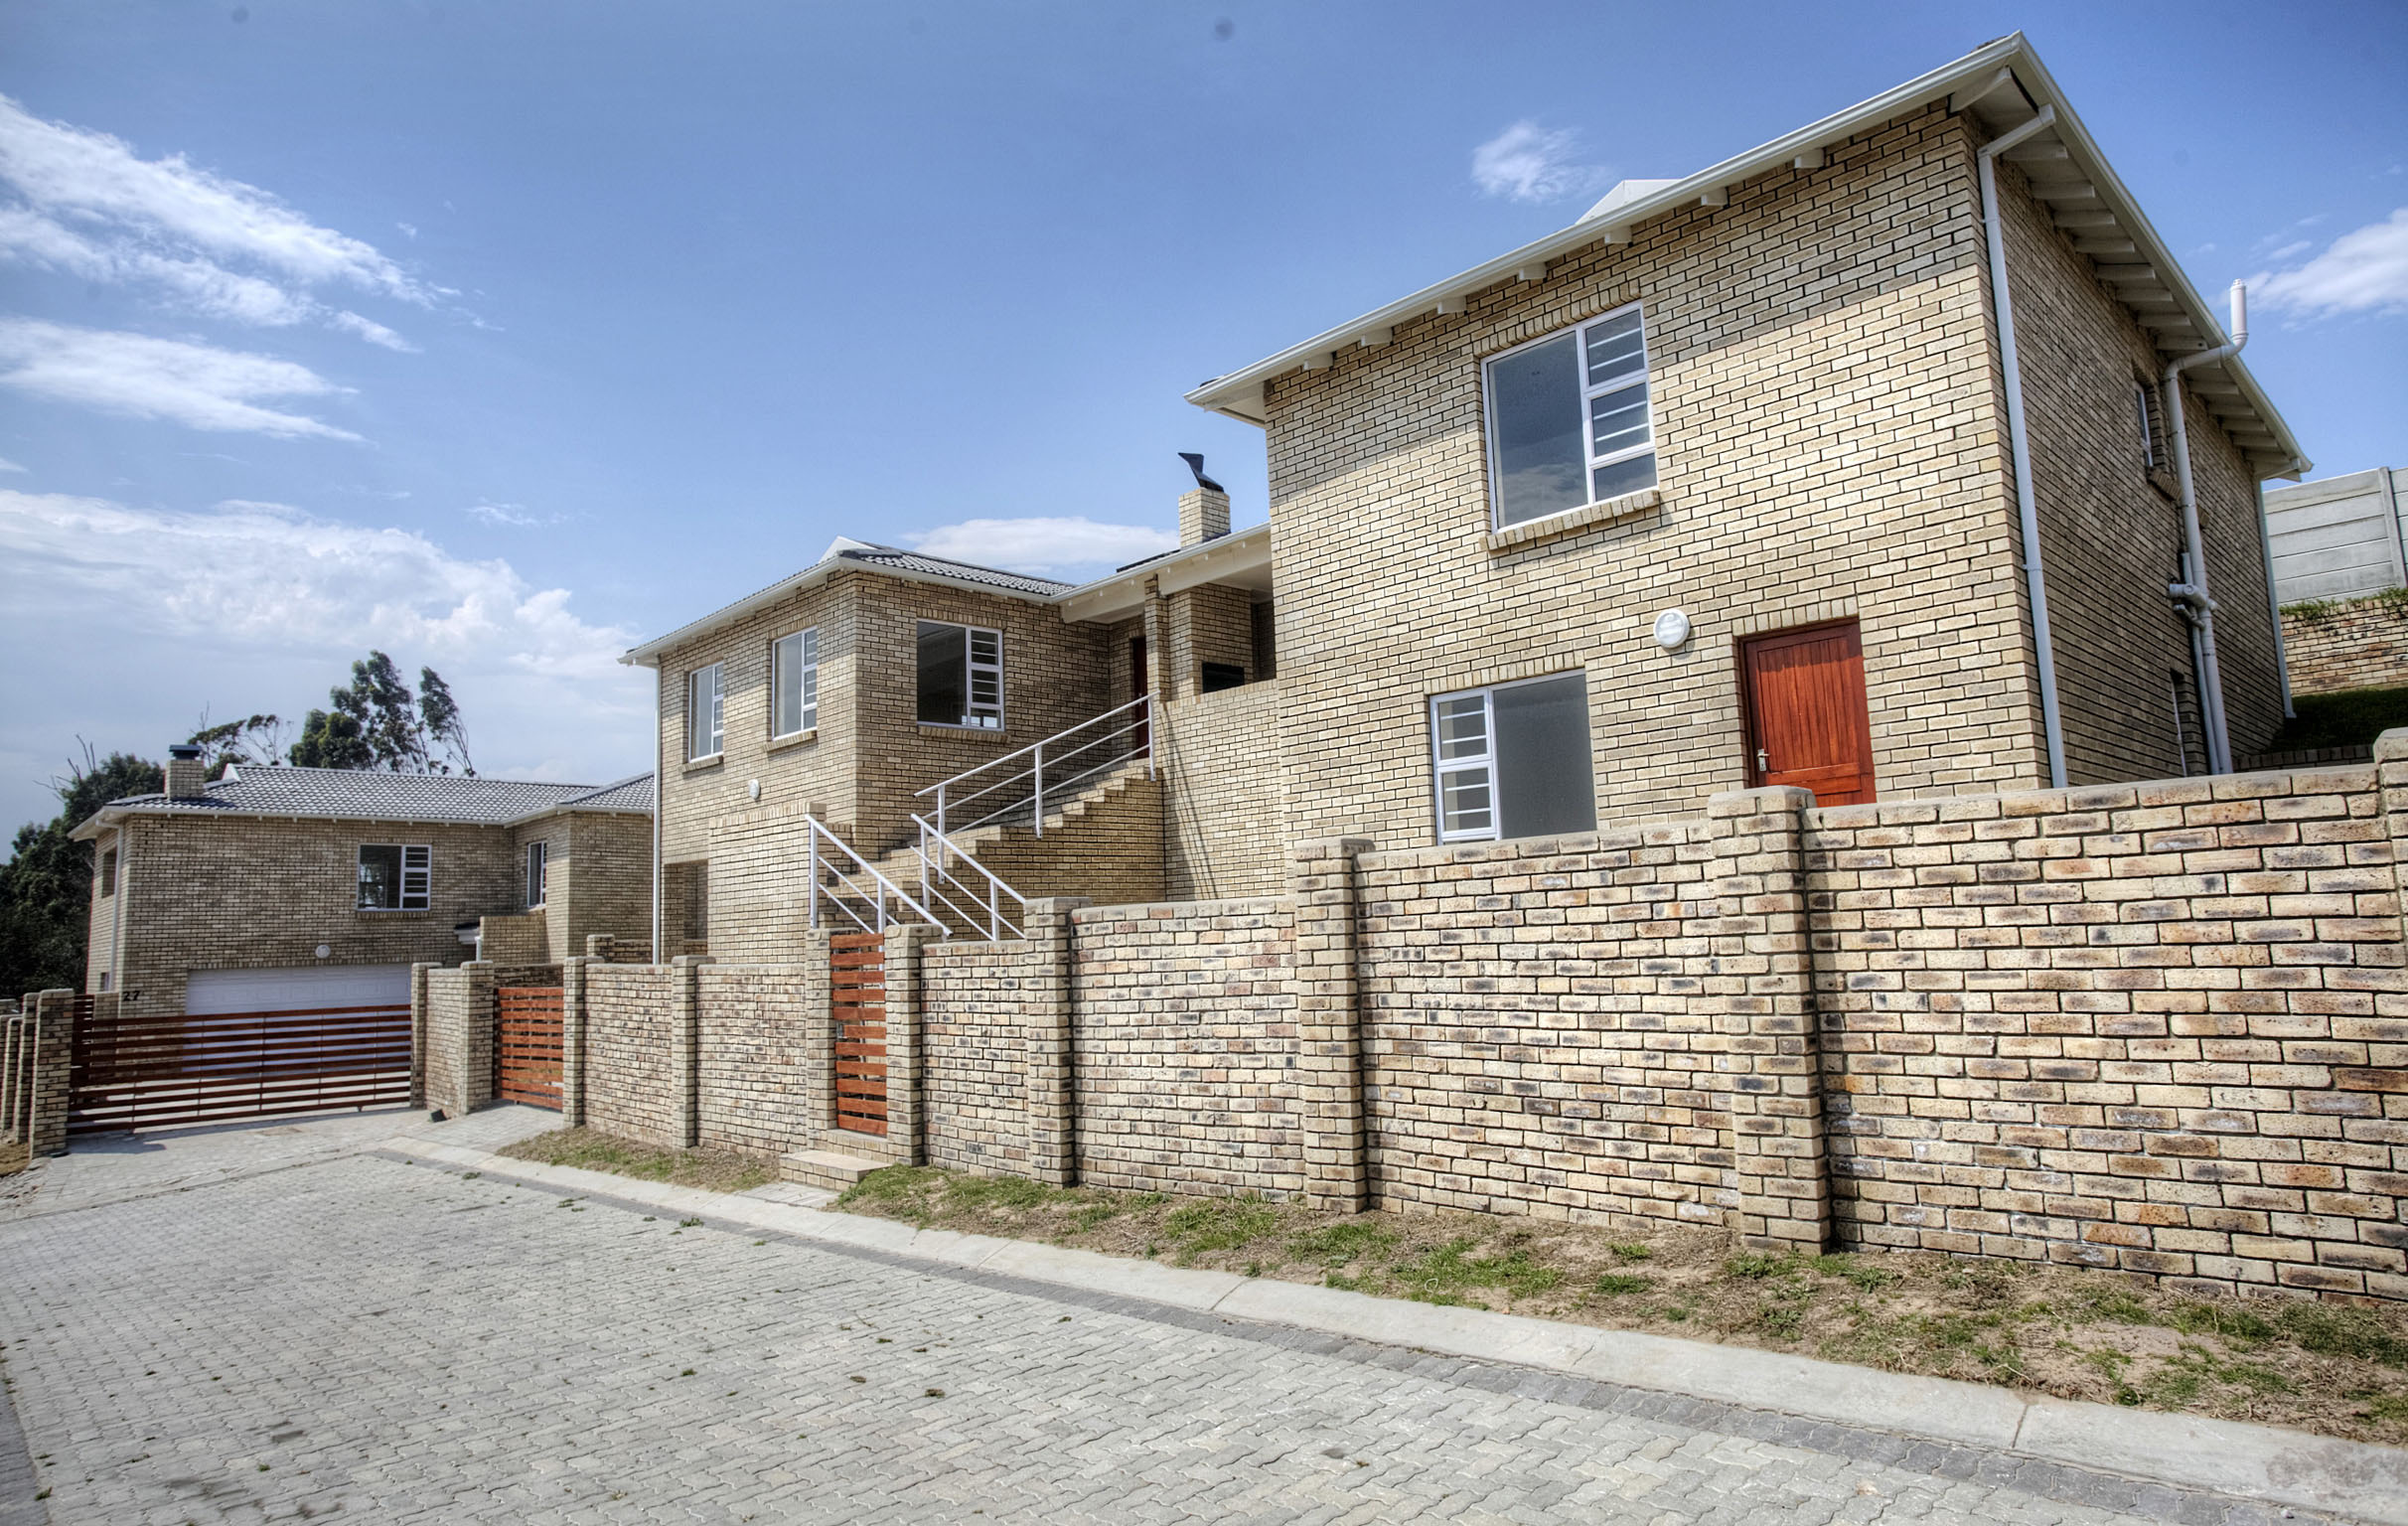 4 Bedroom House for sale in Lorraine ENT0068019 : photo#1